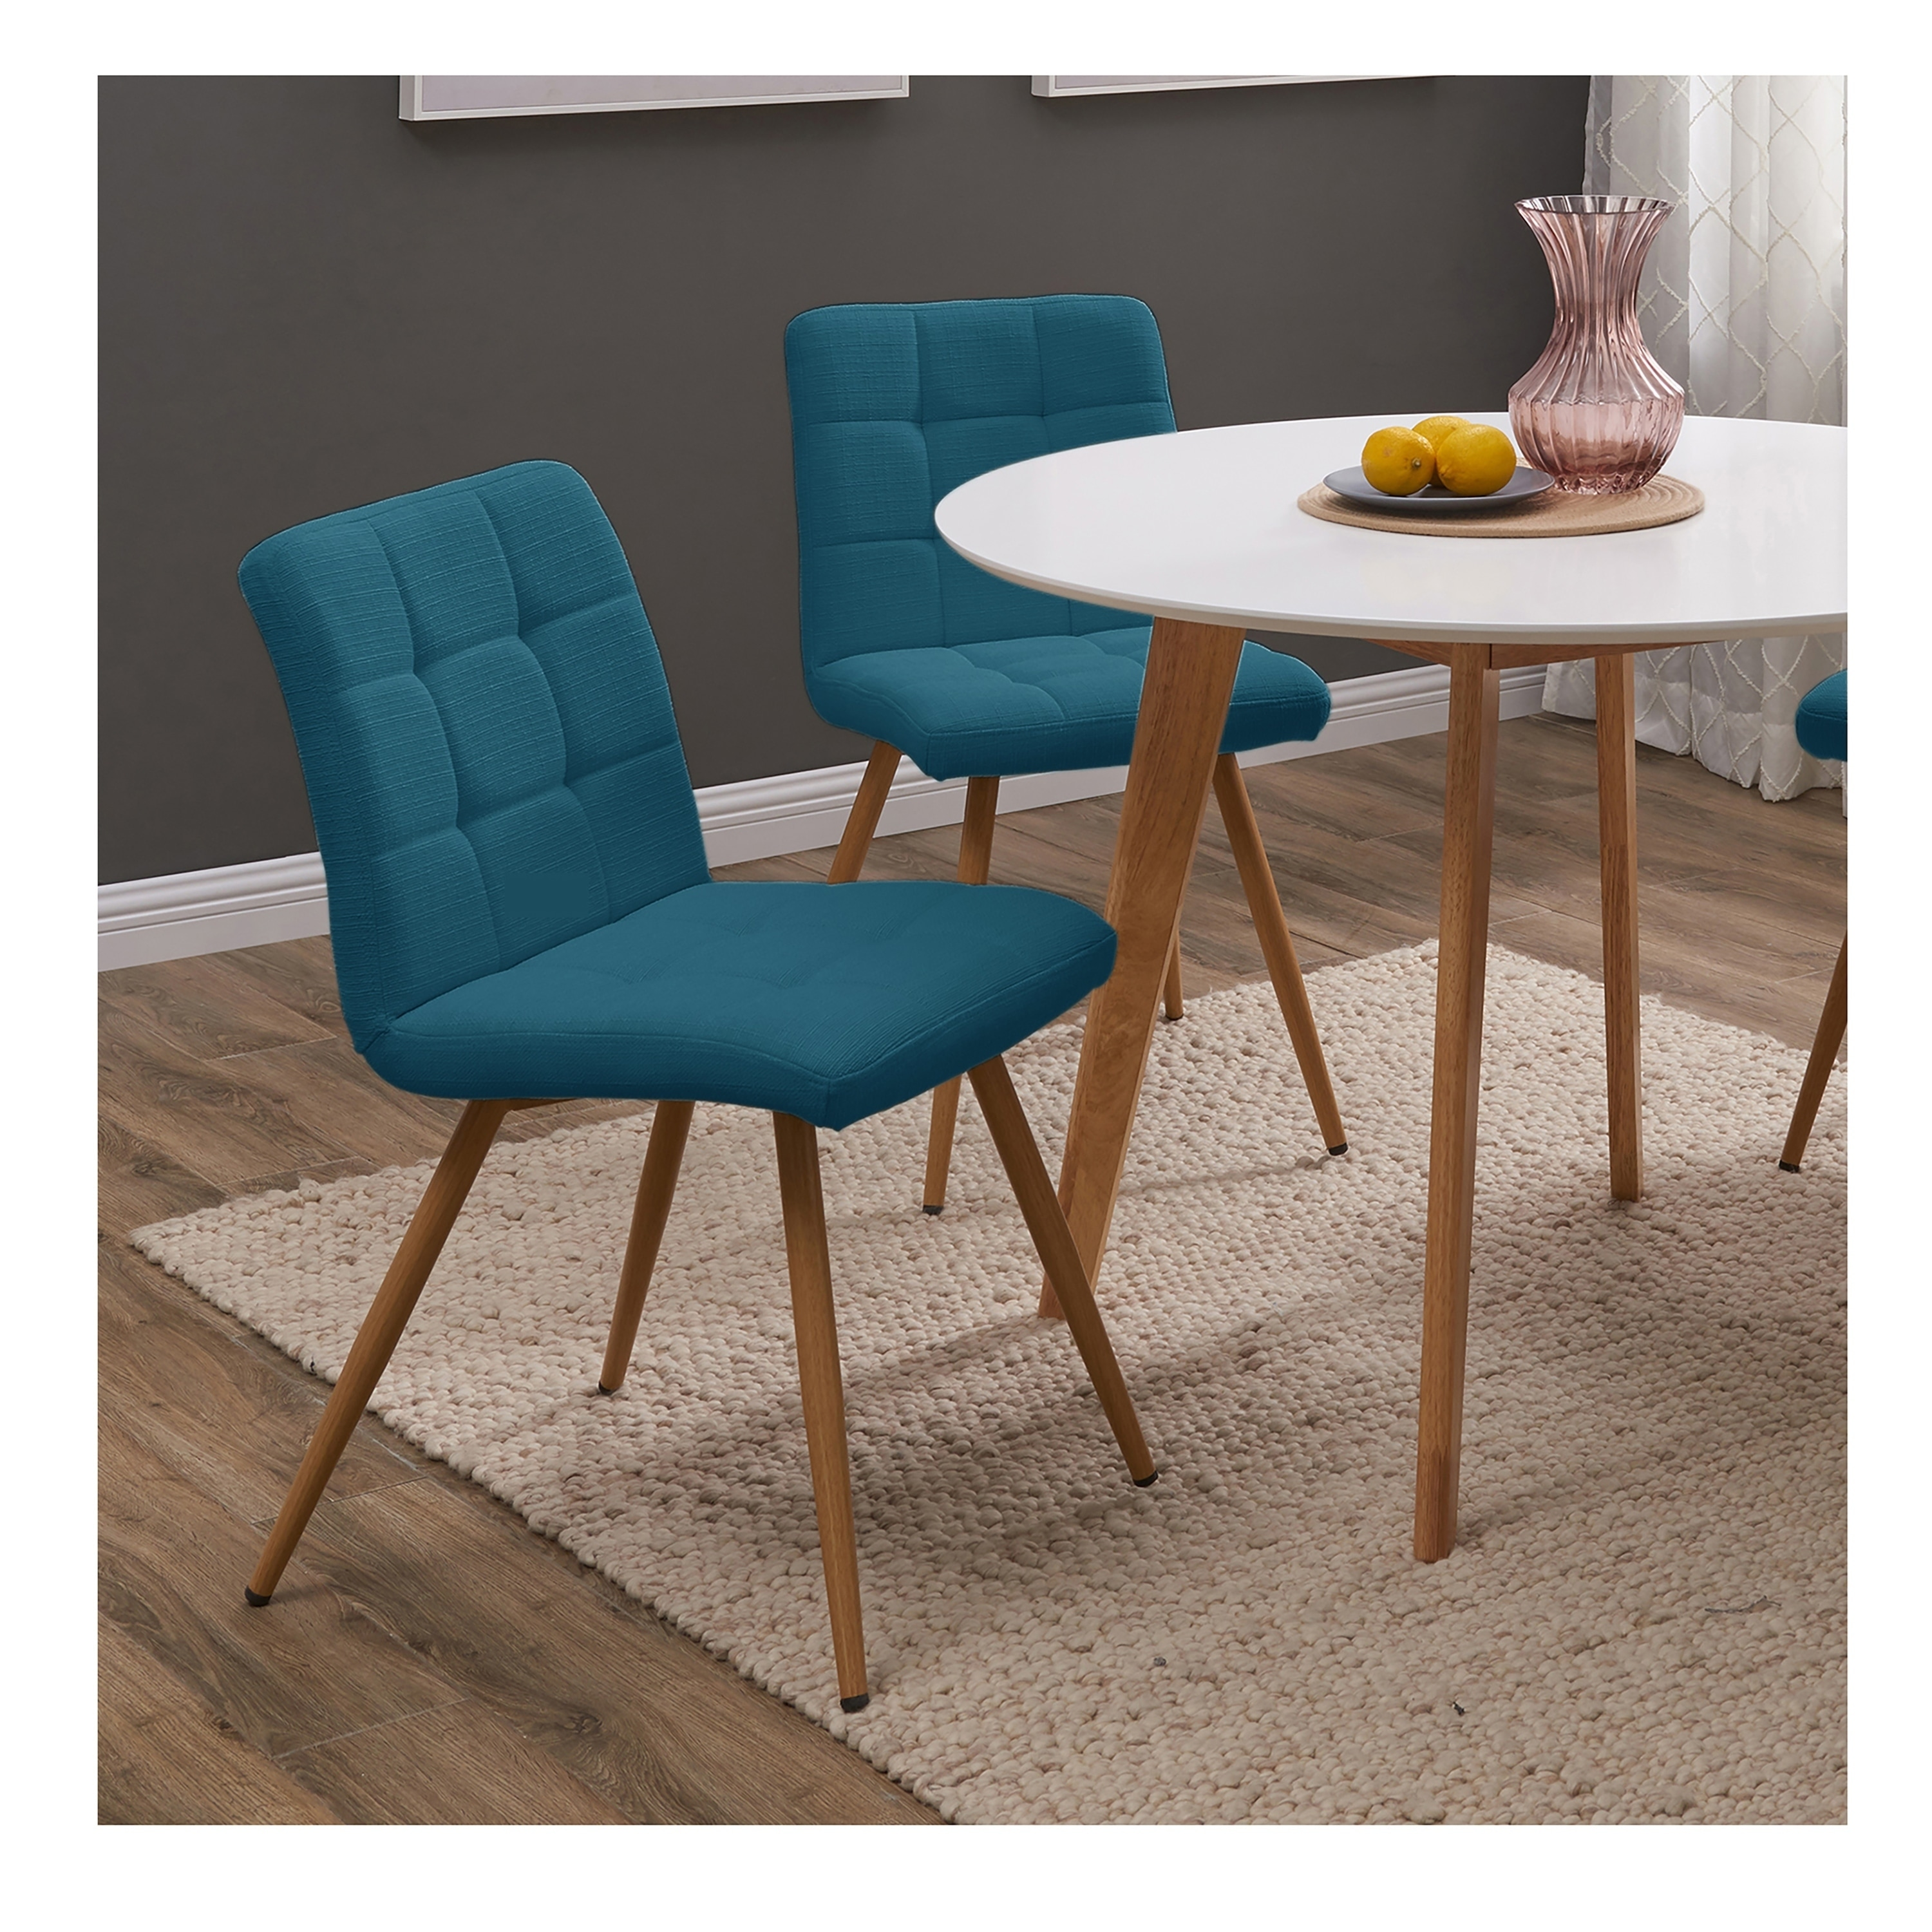 Handy Living Manzanola Peacock Blue Linen Armless Upholstered Dining Chairs Set Of 4 Overstock 22578801